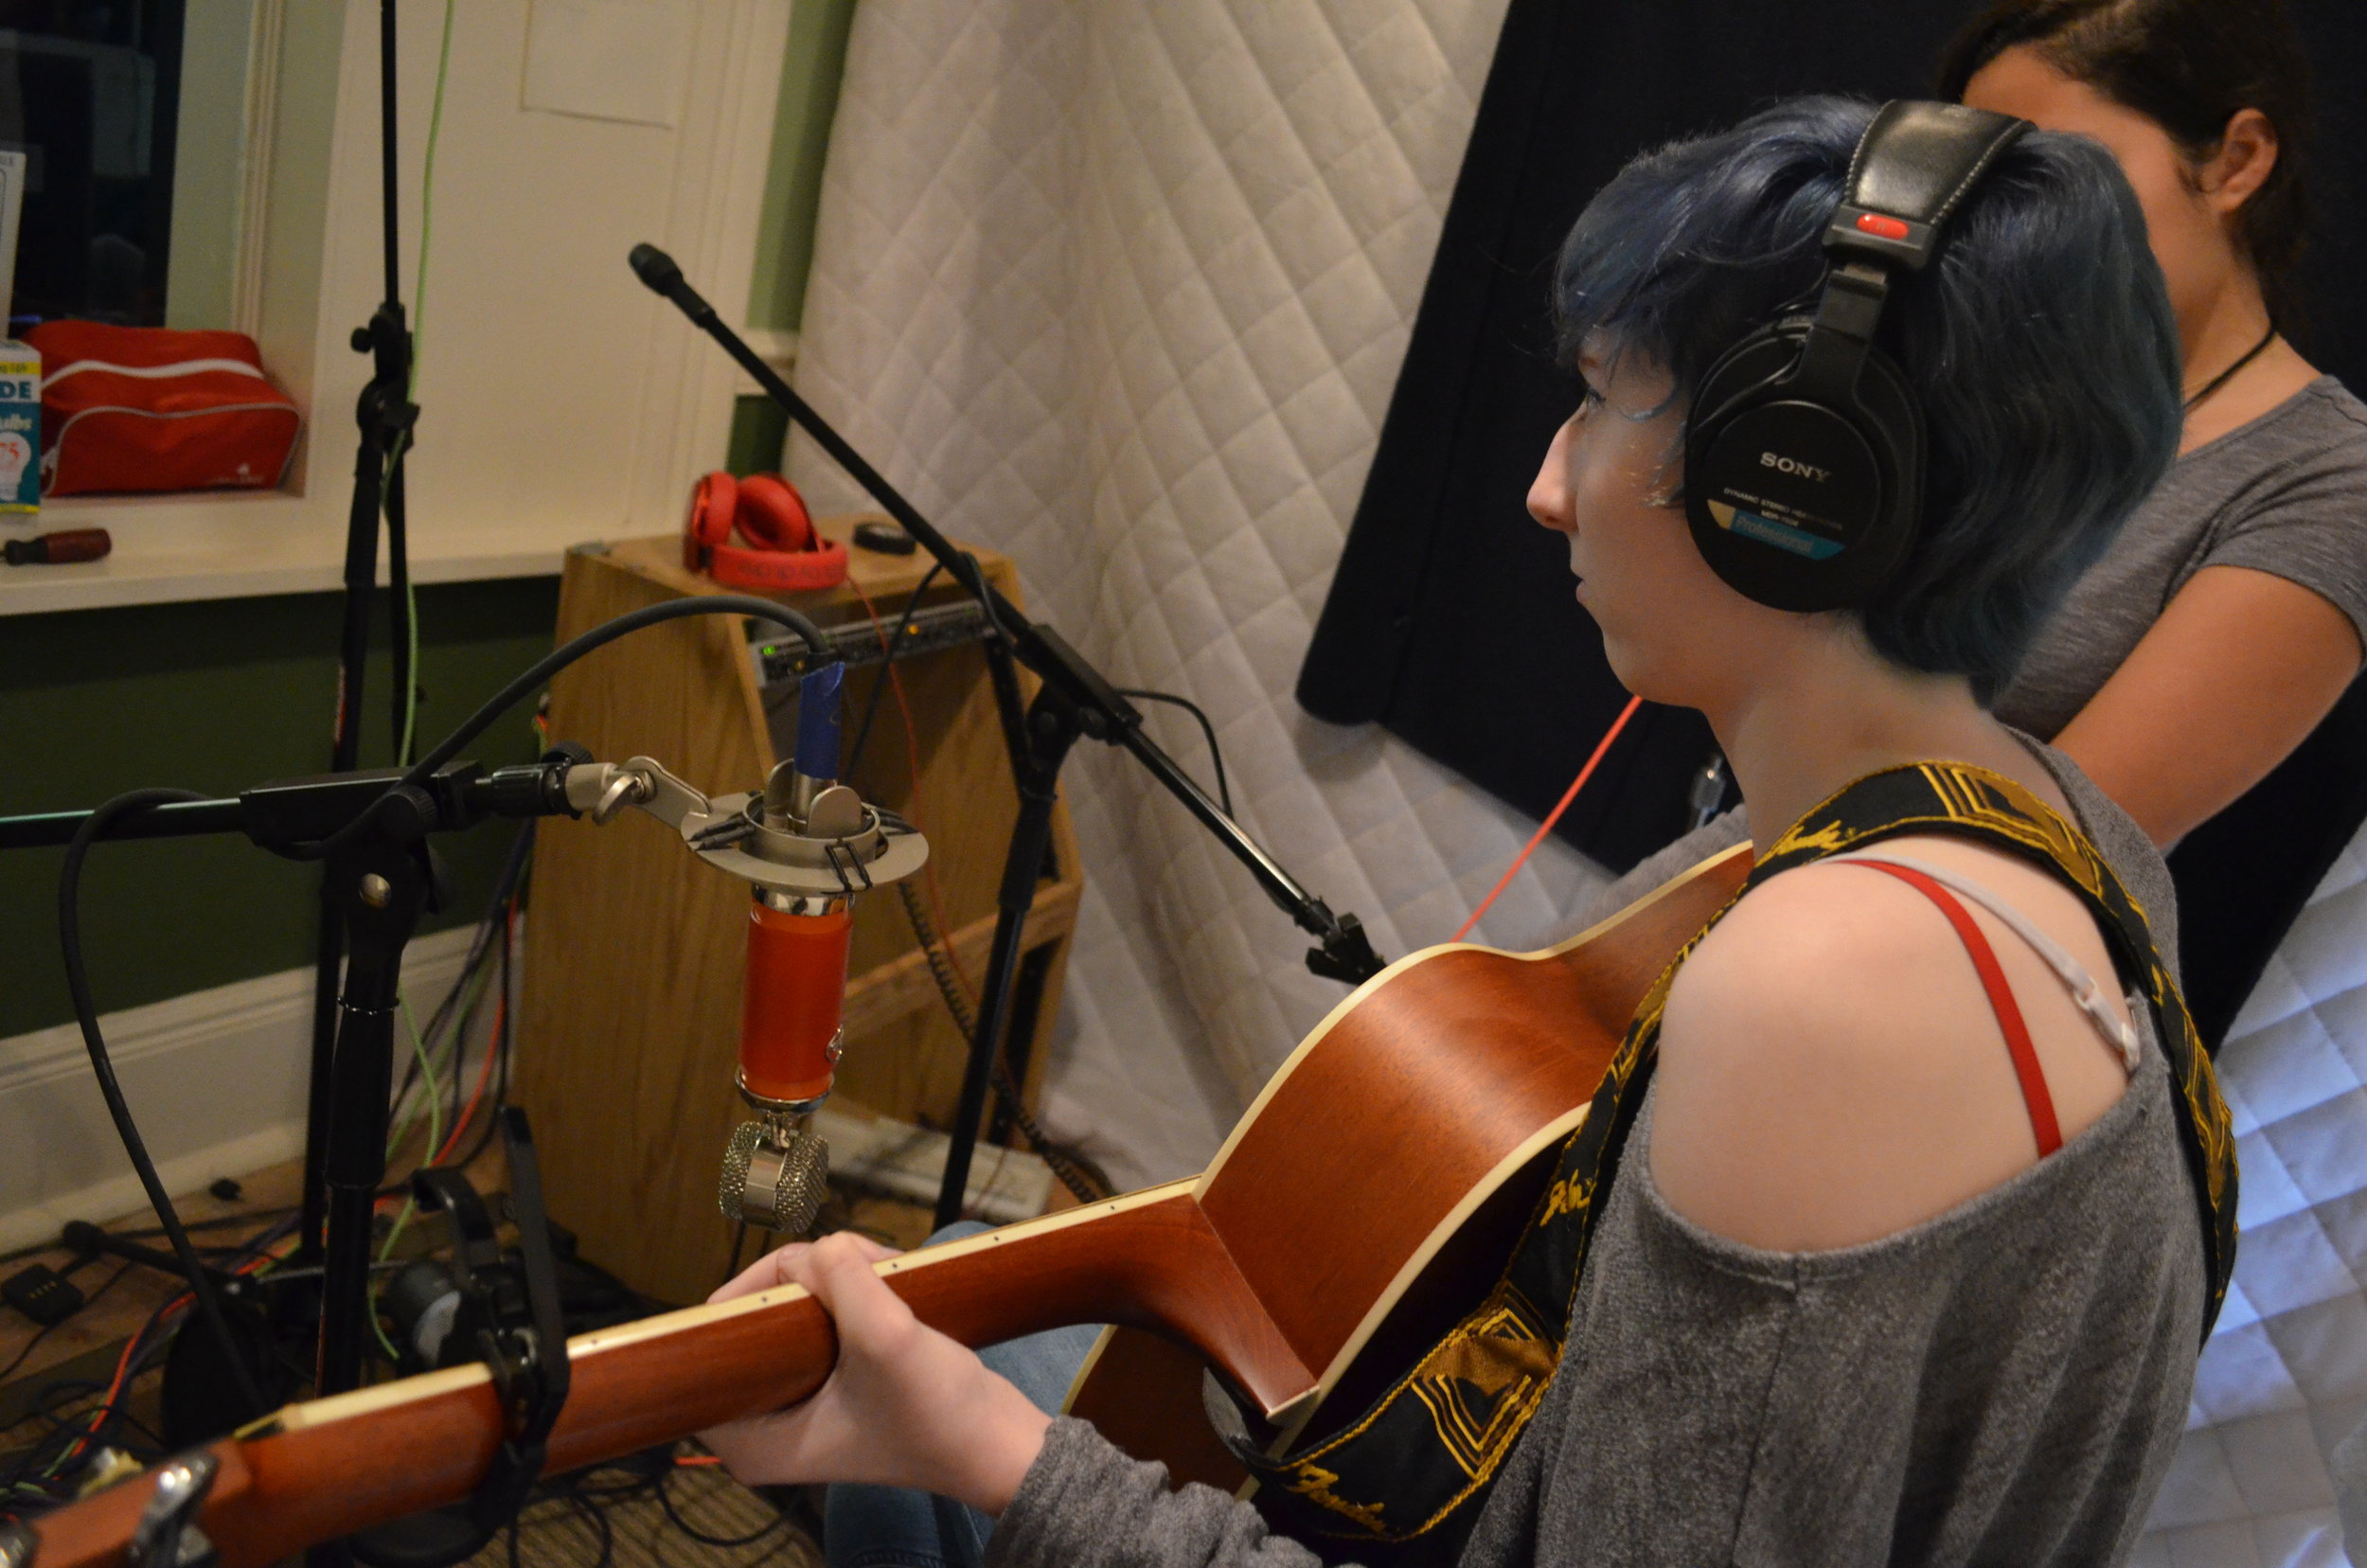 Lee M. and Sarah H. recording their song at Otis III's recording studio.